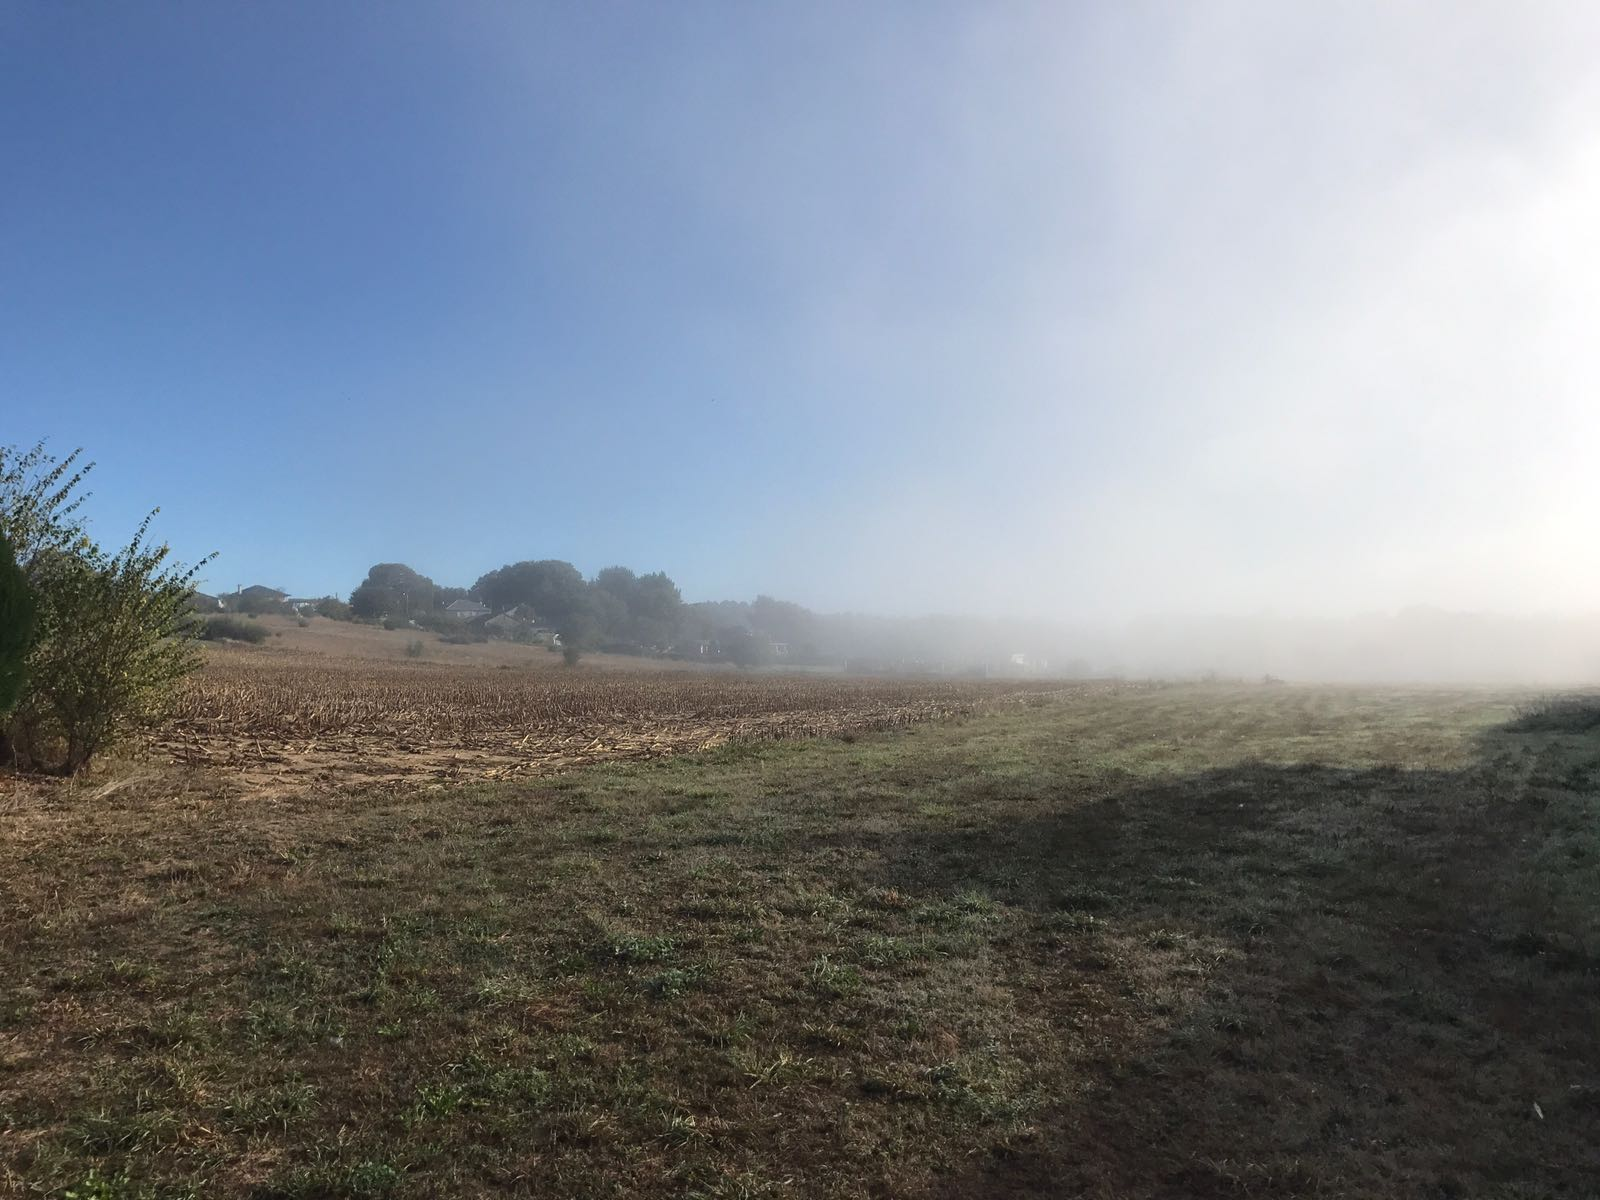 A field half in the sunshine and half covered in mist